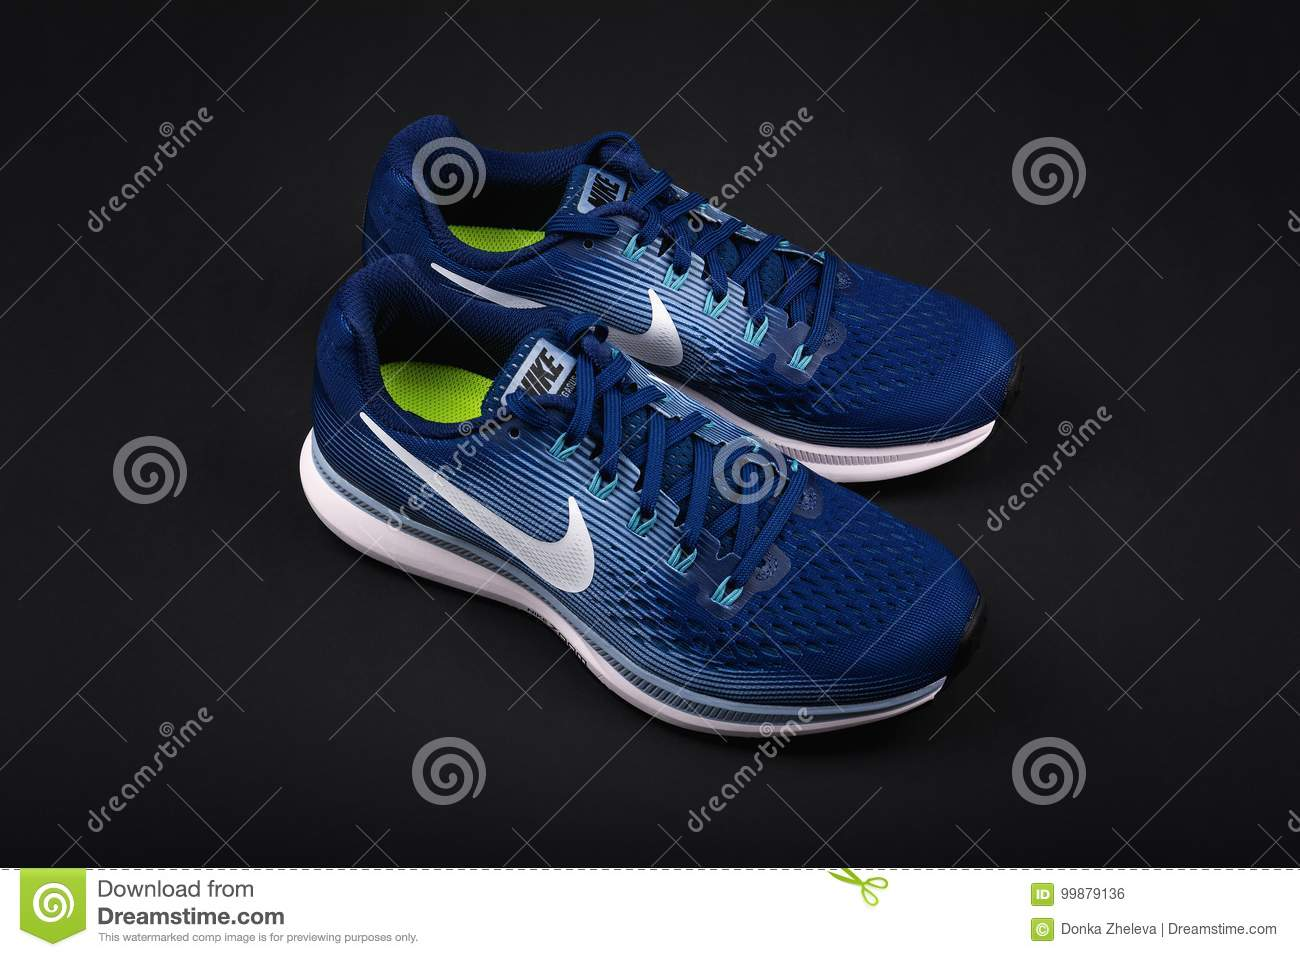 725c530a BURGAS, BULGARIA - SEPTEMBER 6, 2017: Nike Air Zoom Pegasus 34 Women`s  Running Shoes in blue on black background. Editorial Stock Photo